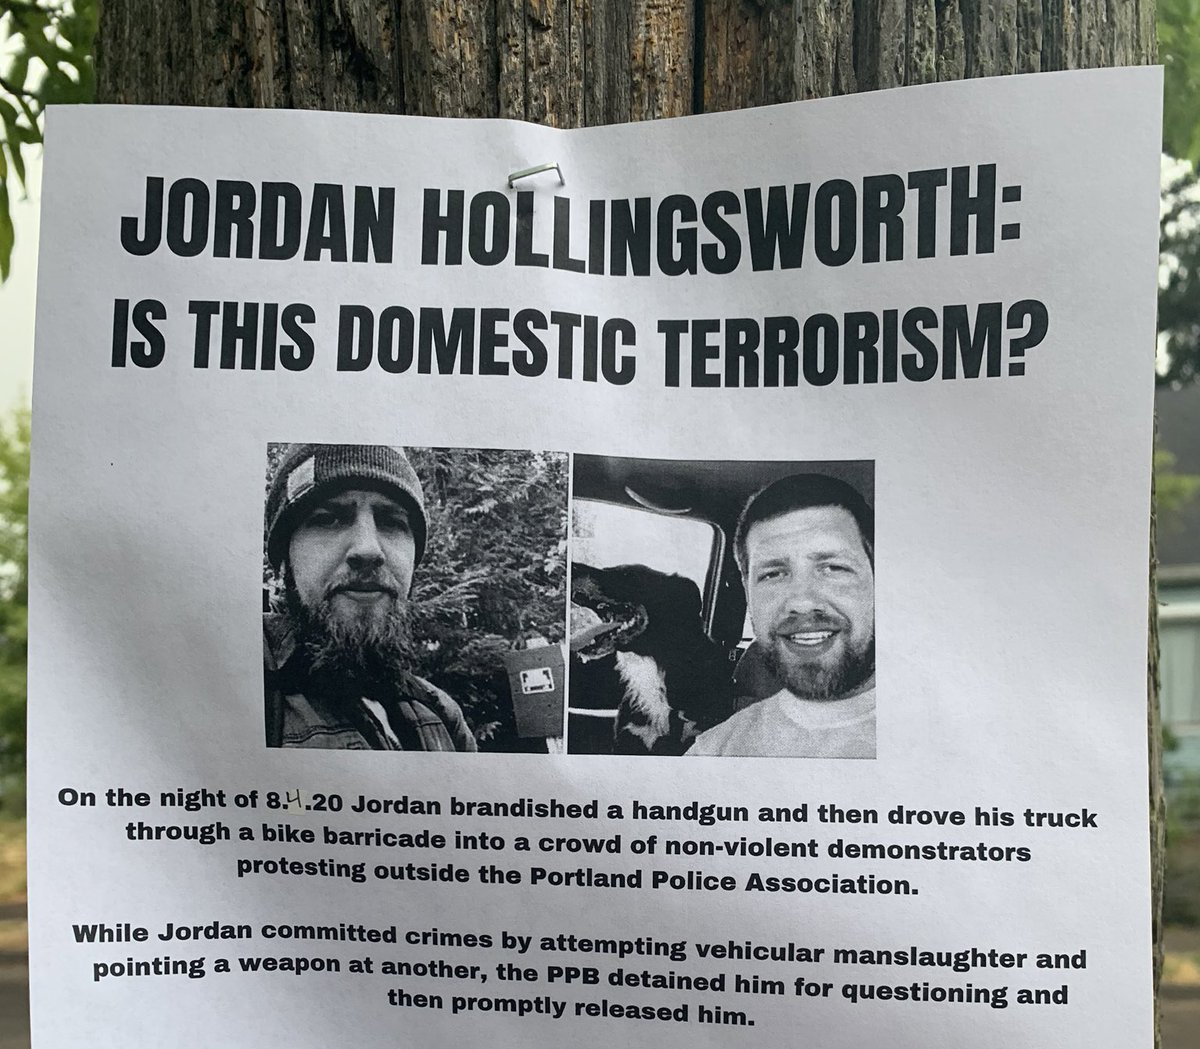 #Antifa have posted flyers around Portland with the name, photo, address, car license plate and phone number of the man they accuse of driving through their street barricade during an antifa riot in north Portland this week. His car was smashed & the tires were slashed by antifa.